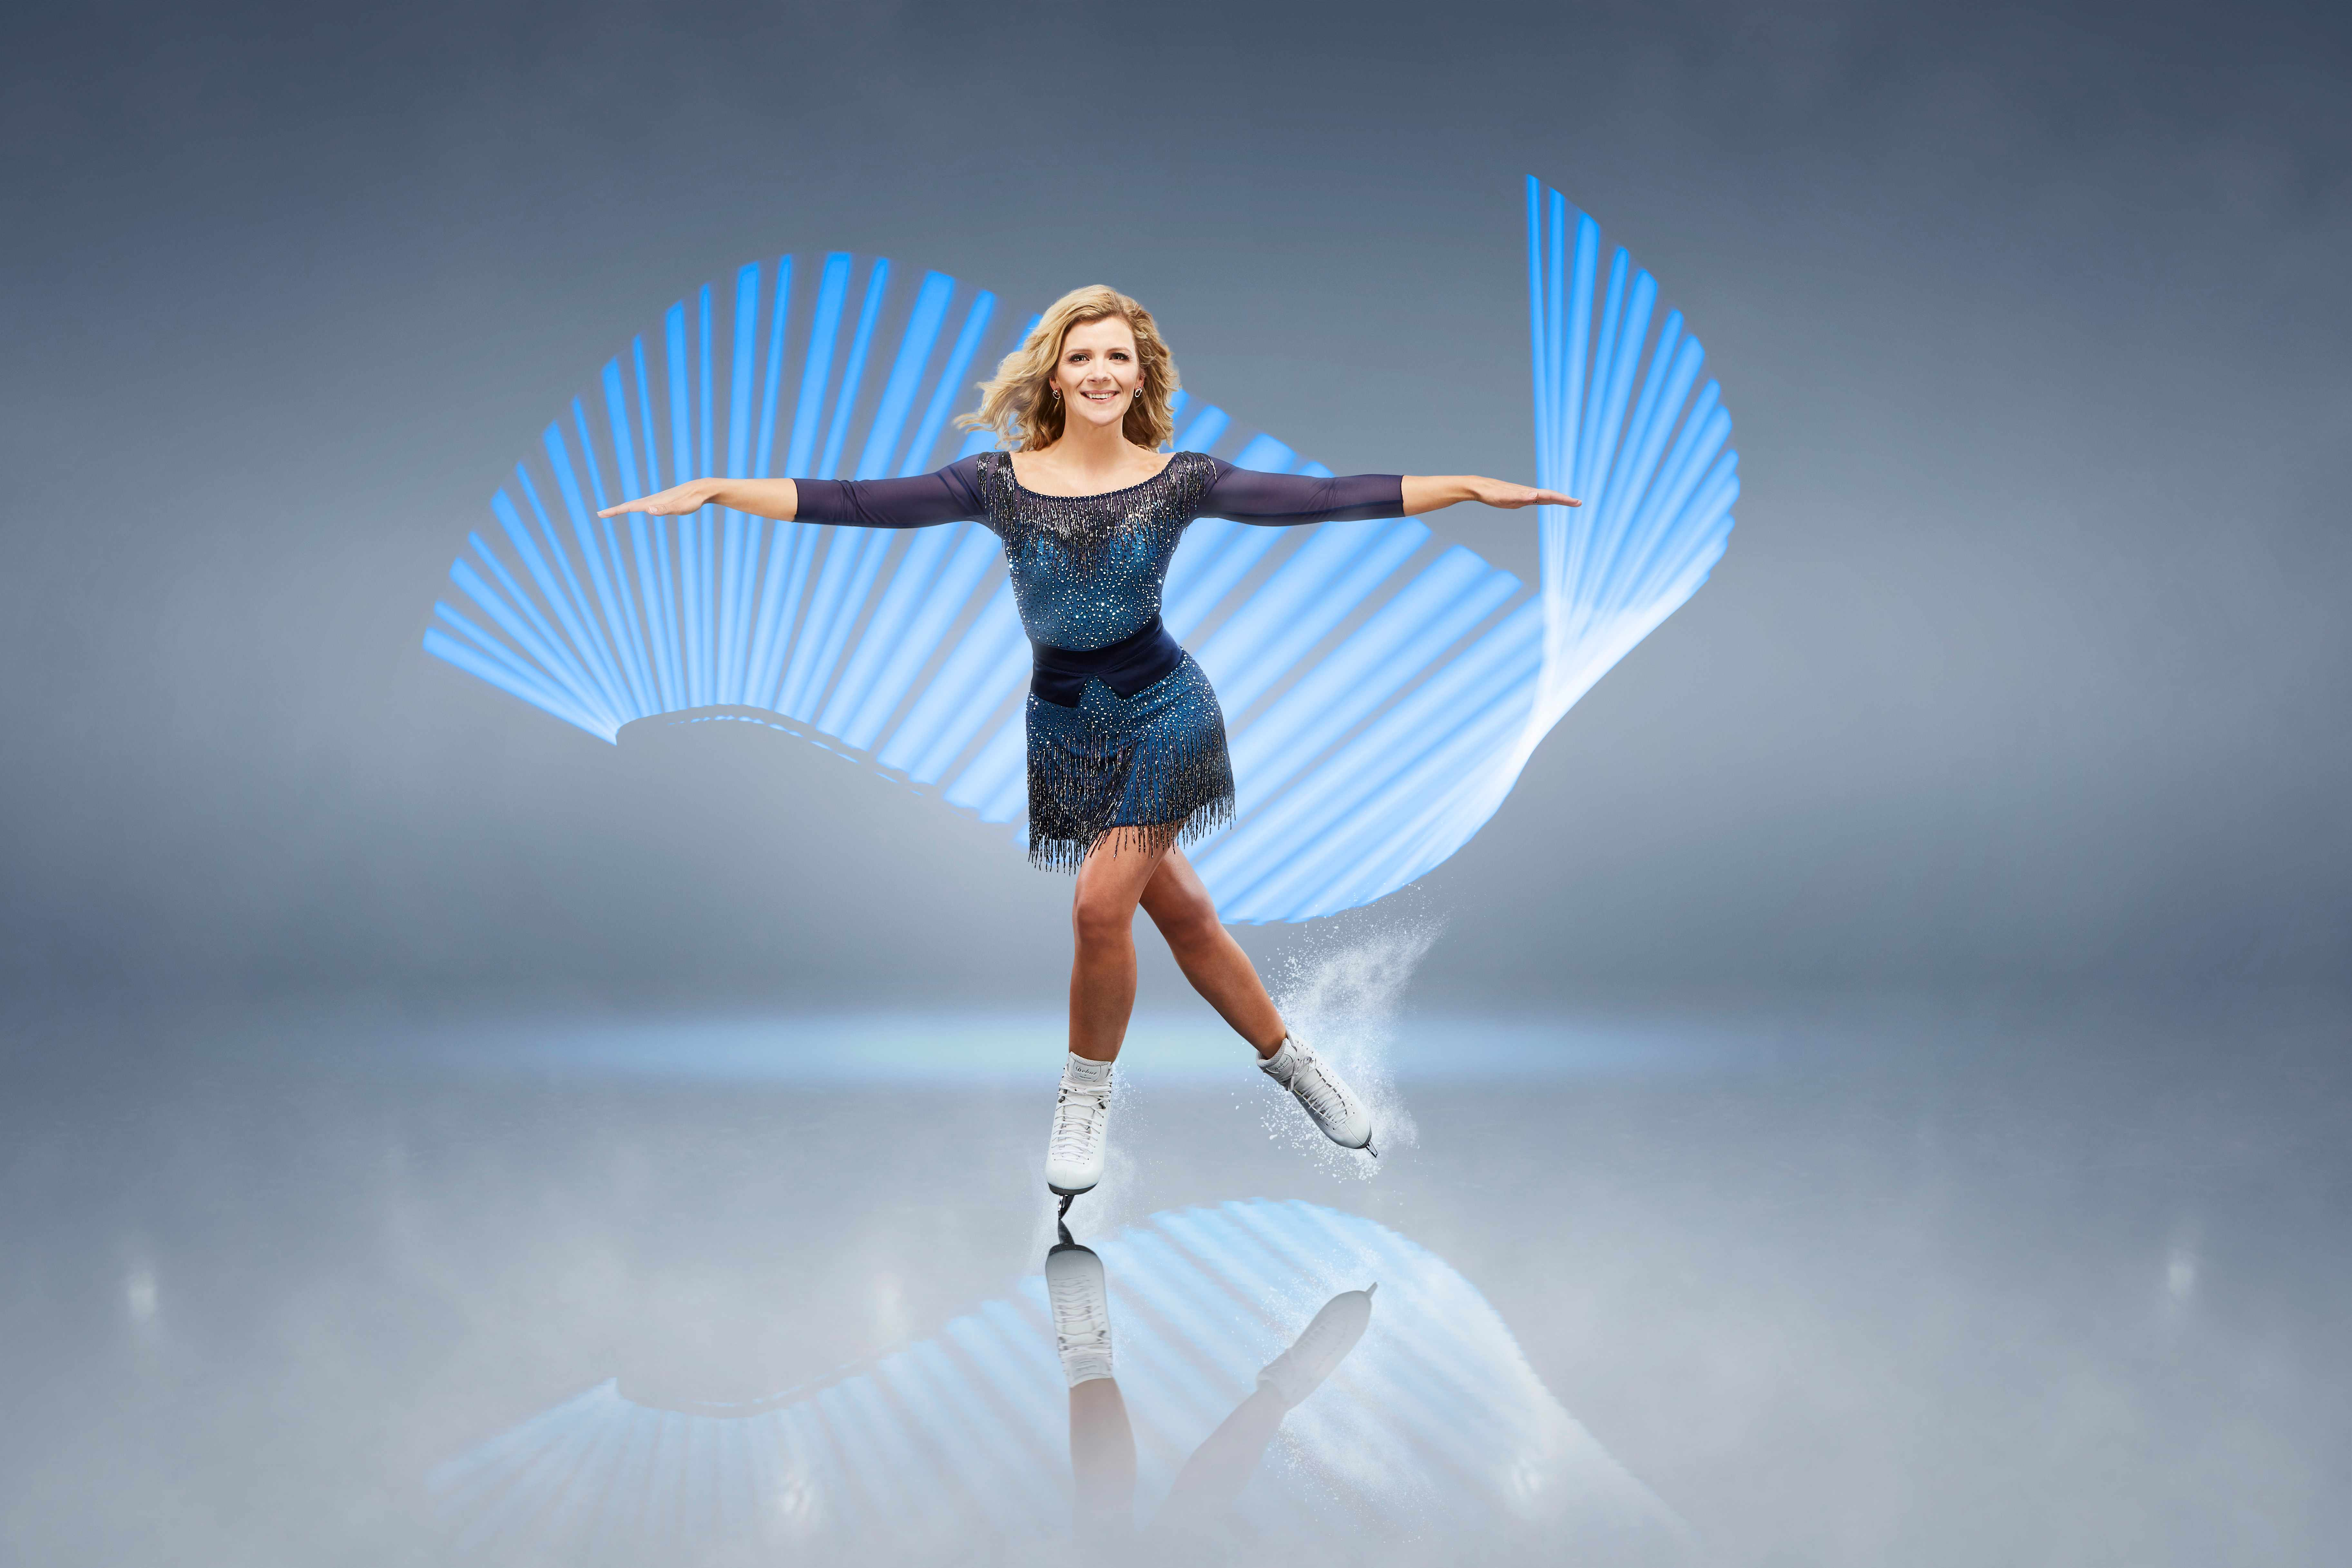 Dancing on Ice Jane Danson (ITV)